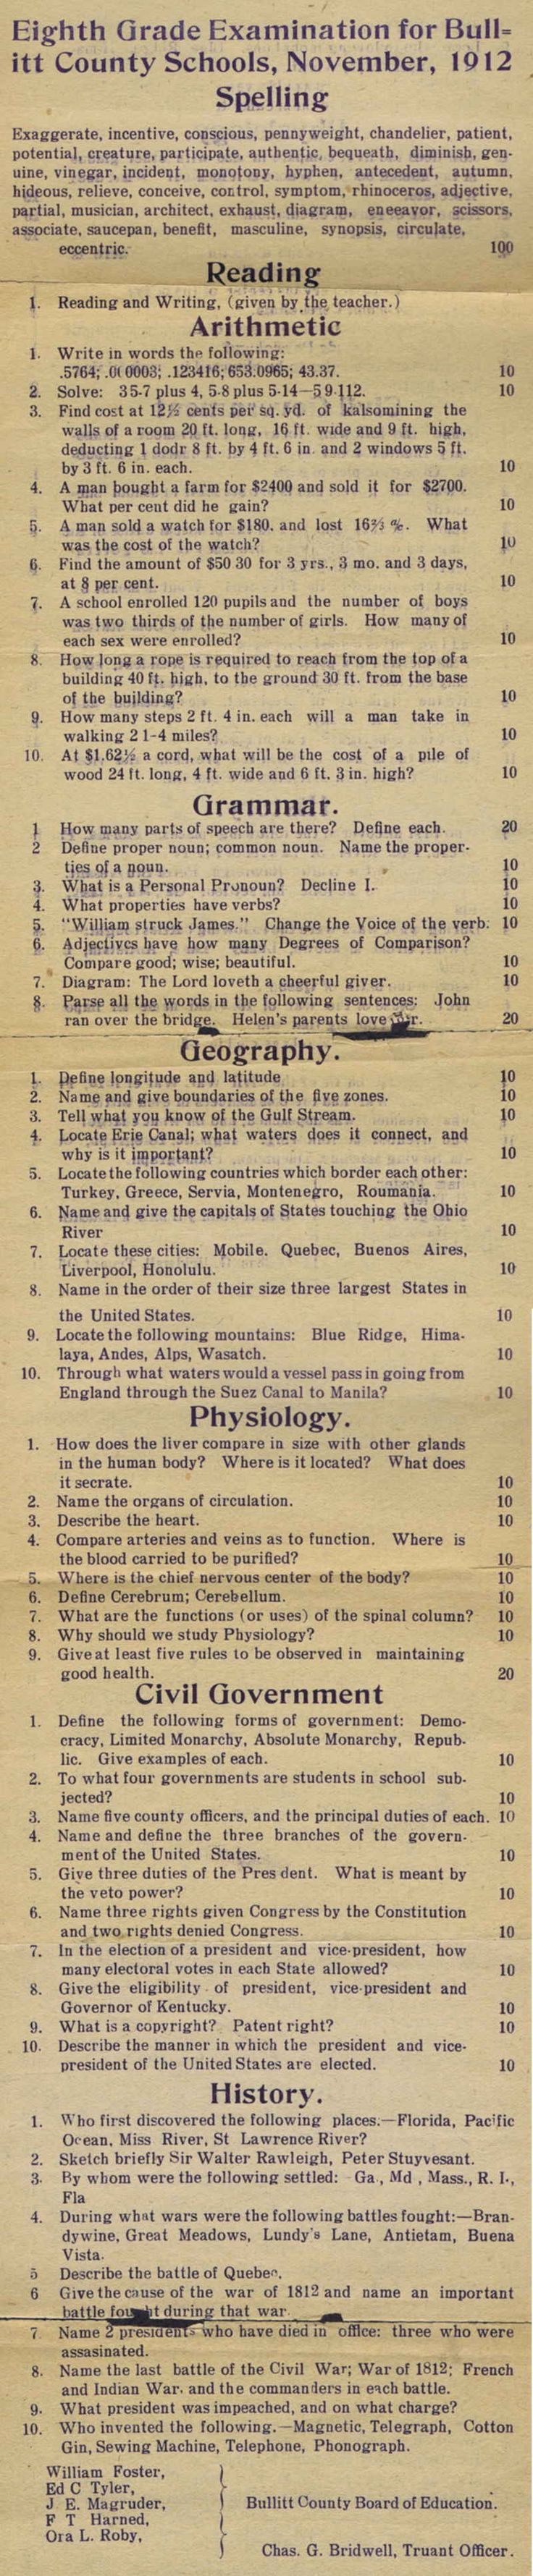 Newly Discovered Eighth Grade Exam From 1912 Shows How Dumbed Down America Has Become